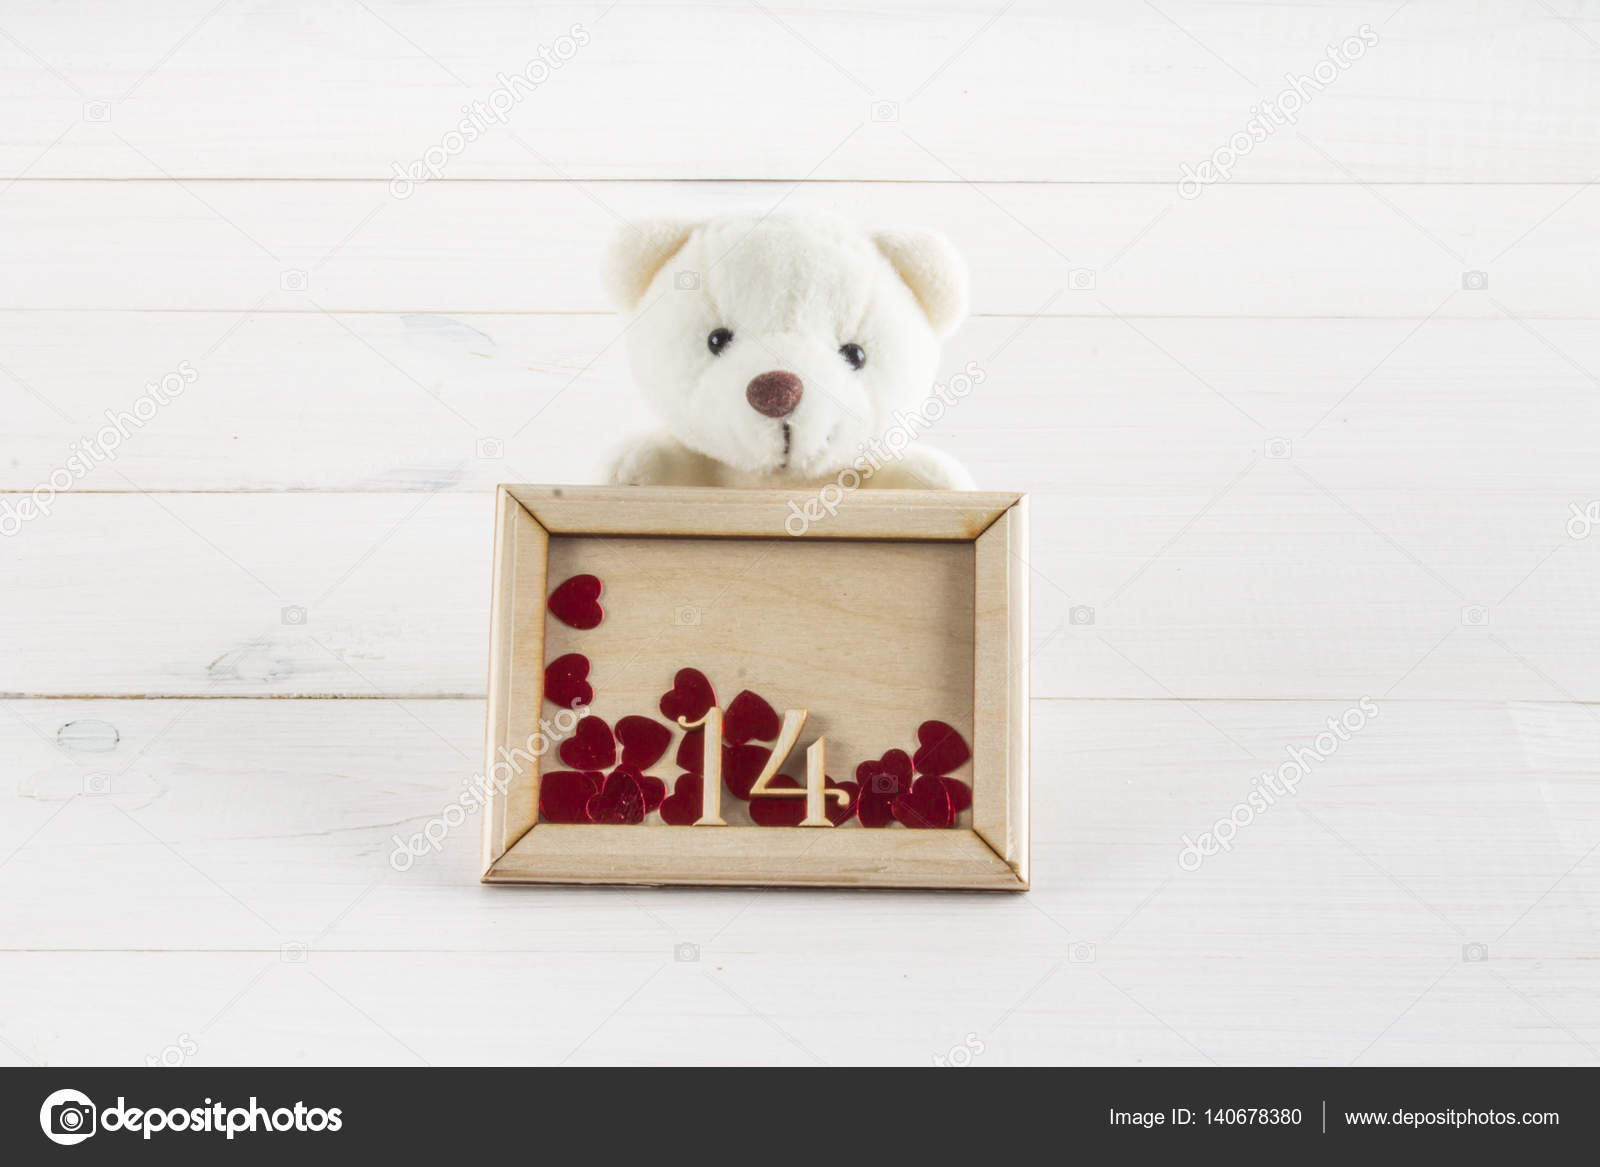 White Teddy Bear Holding Plate With Hearts Concept On 14 February